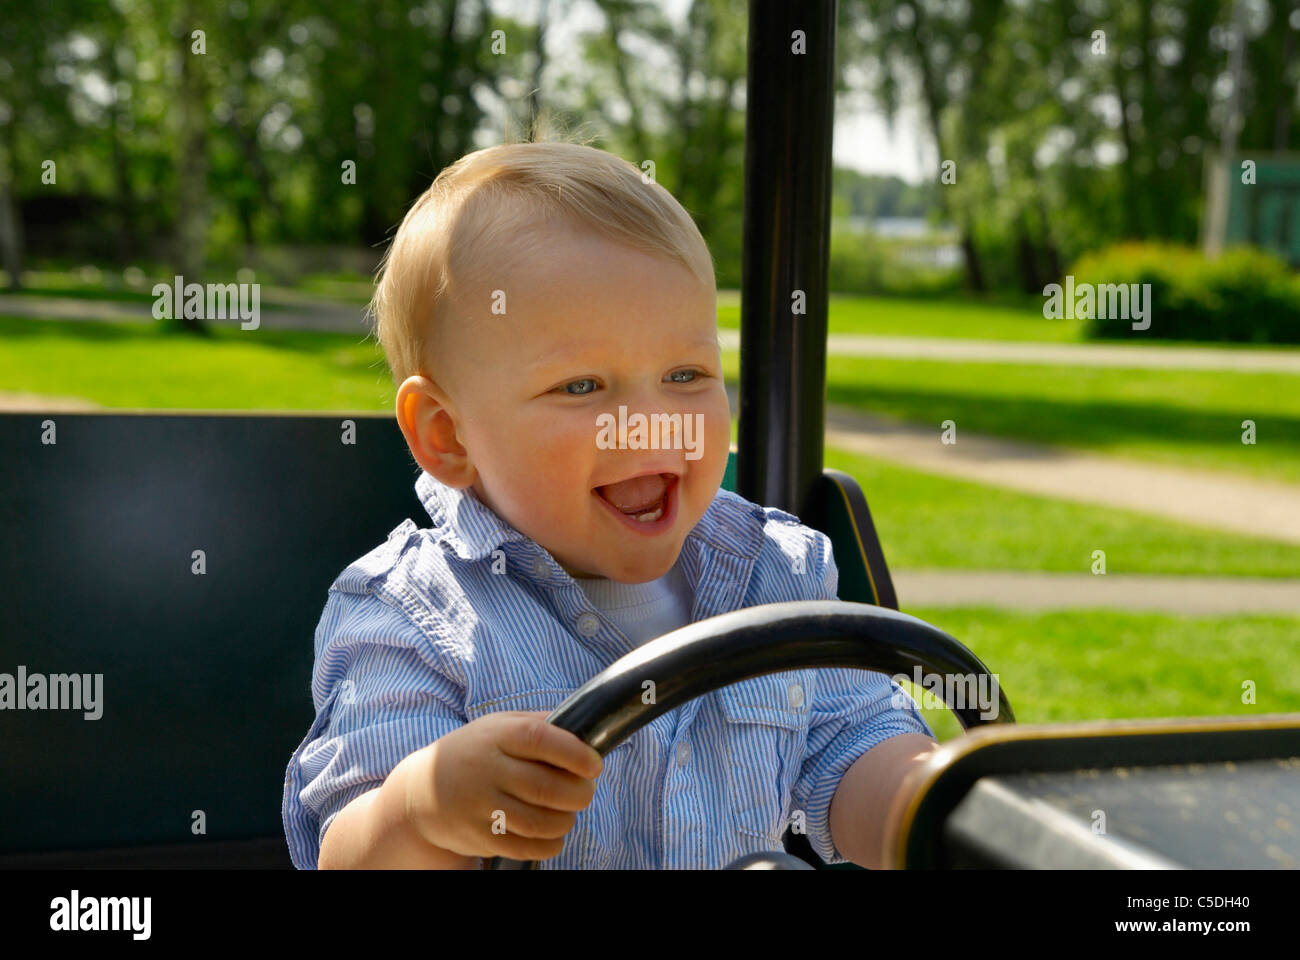 Happy little boy driving cropped petite voiture dans l'aire de jeux Photo Stock